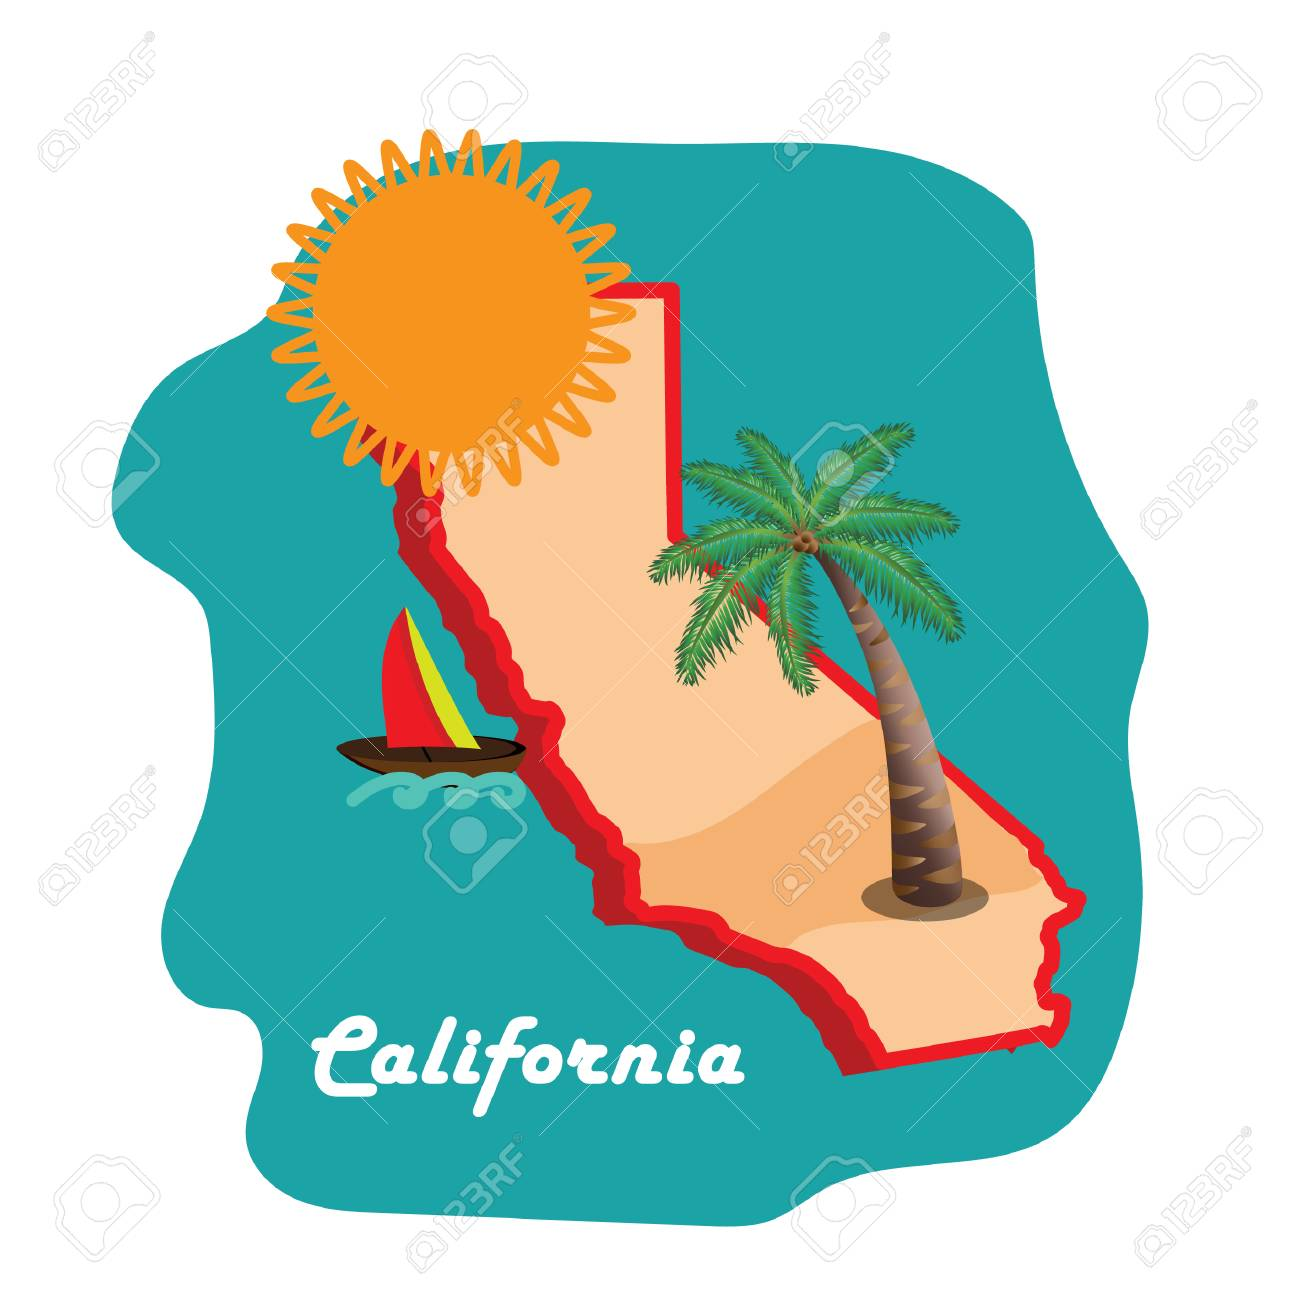 california state map with long beach.